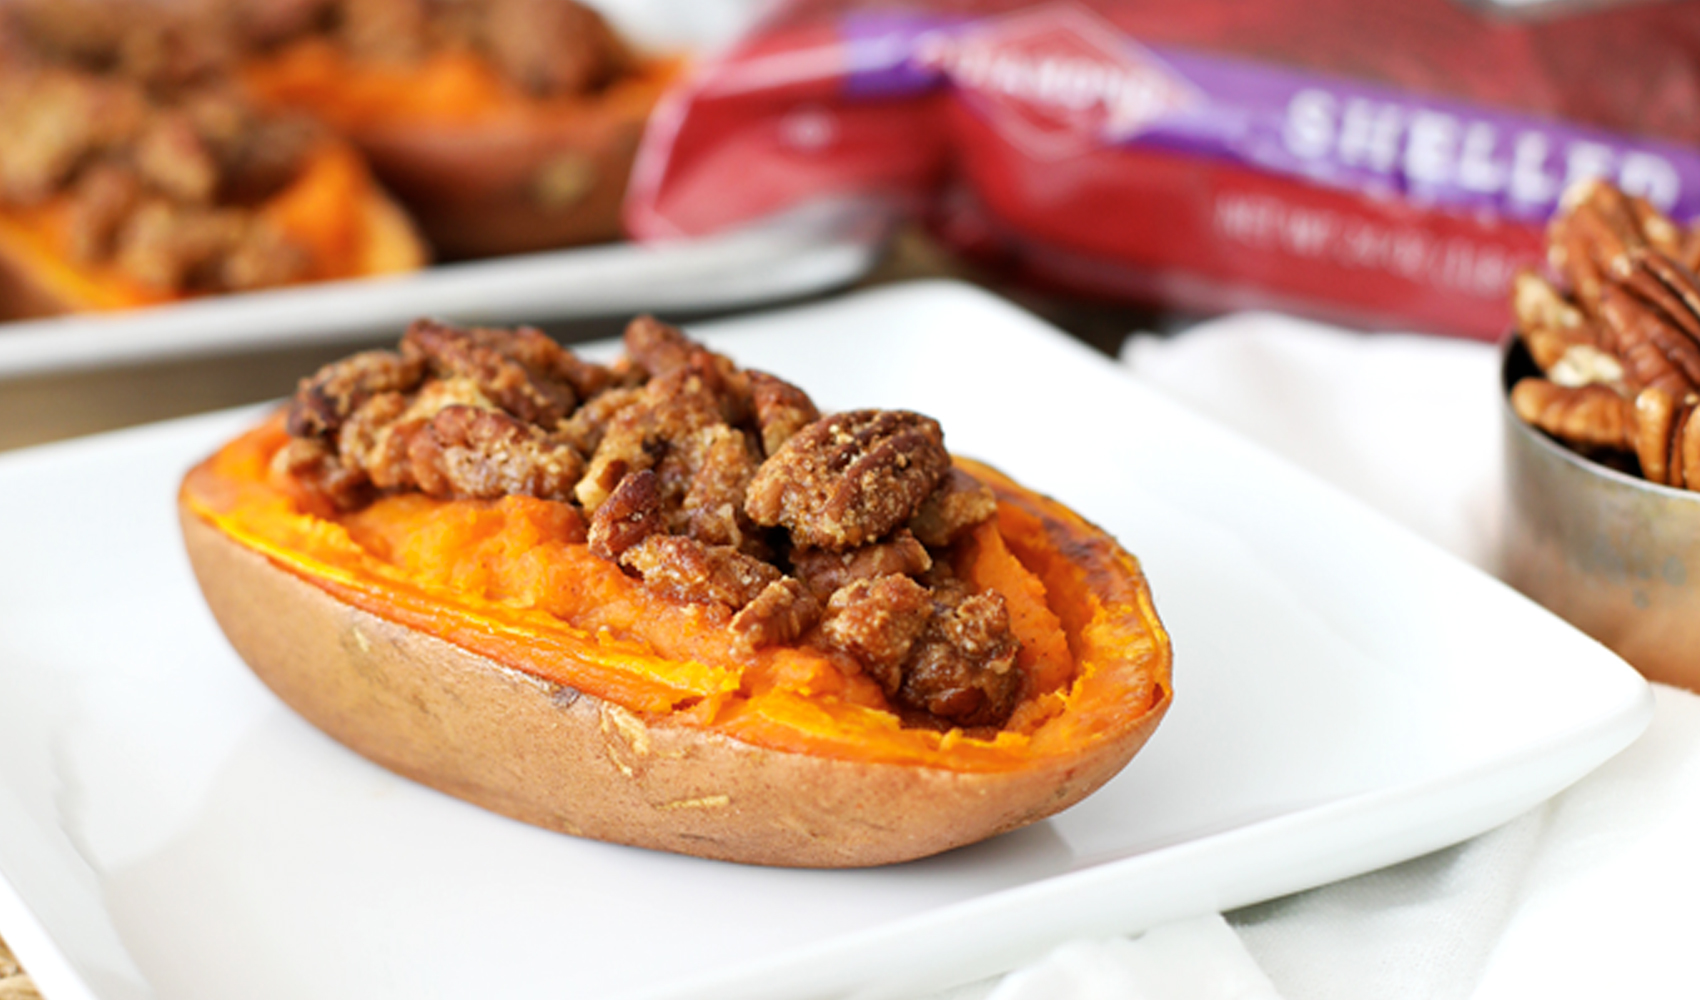 Maple Pecan Twice Baked Sweet Potato